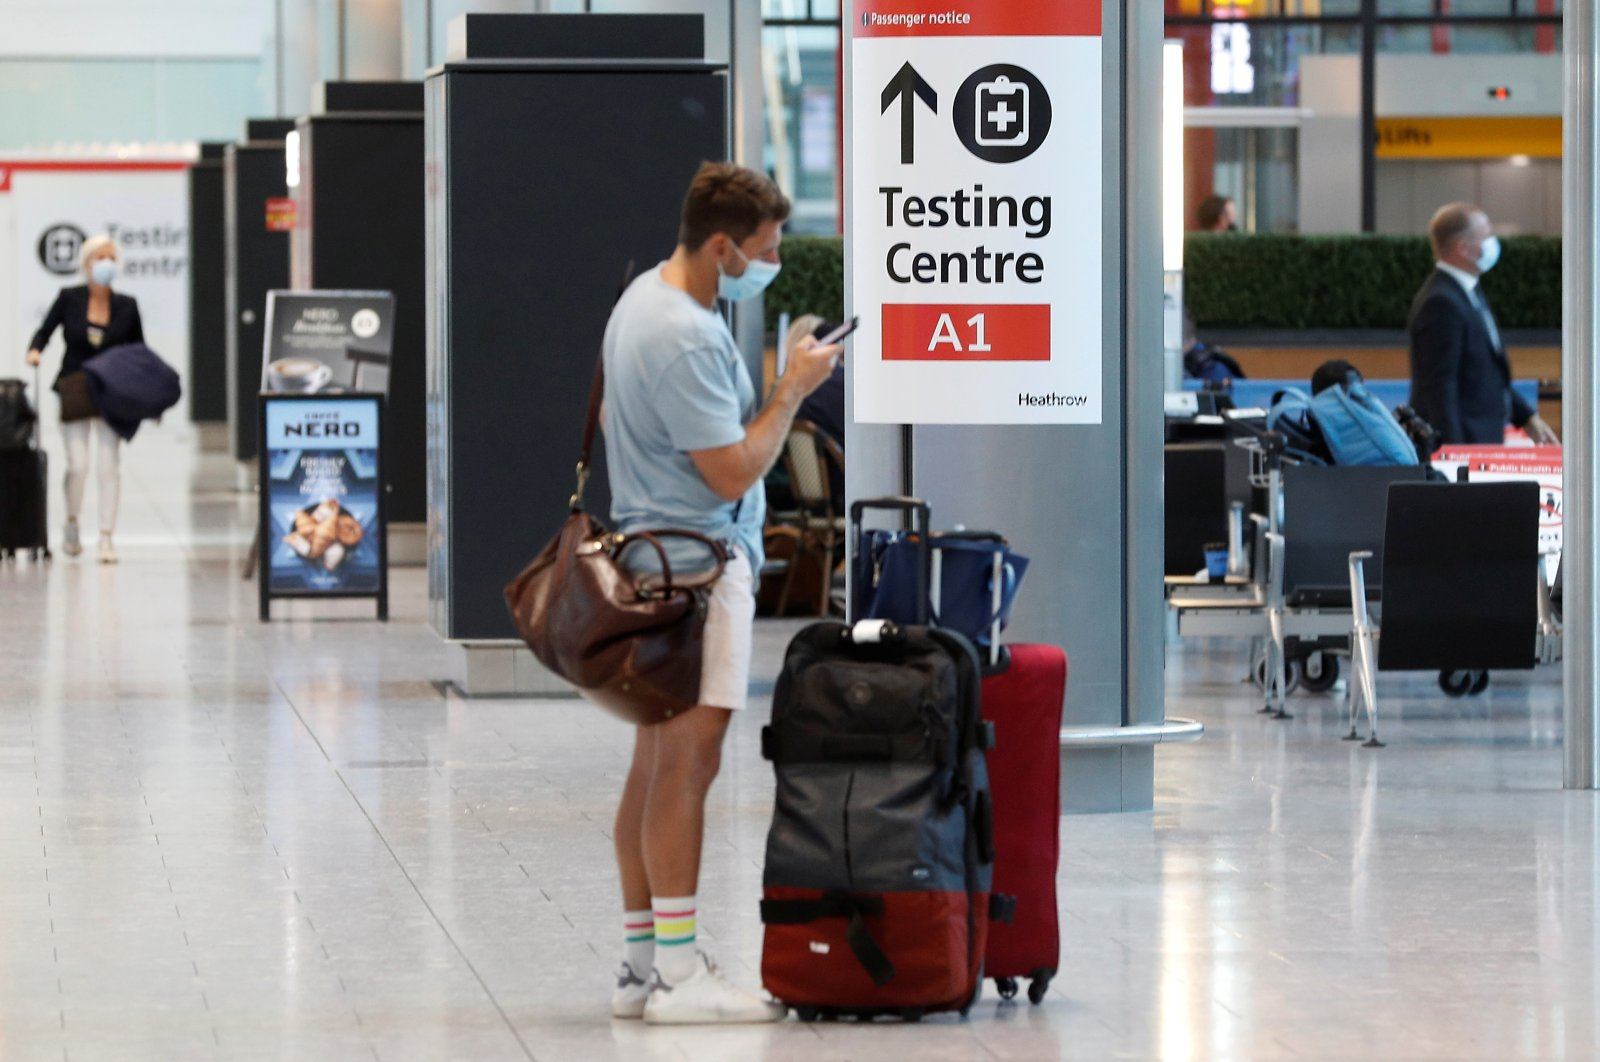 A passenger stands next to a COVID-19 testing center sign in the international arrivals area of Terminal 5 in London's Heathrow Airport, Britain, Aug. 2, 2021. (Reuters Photo)